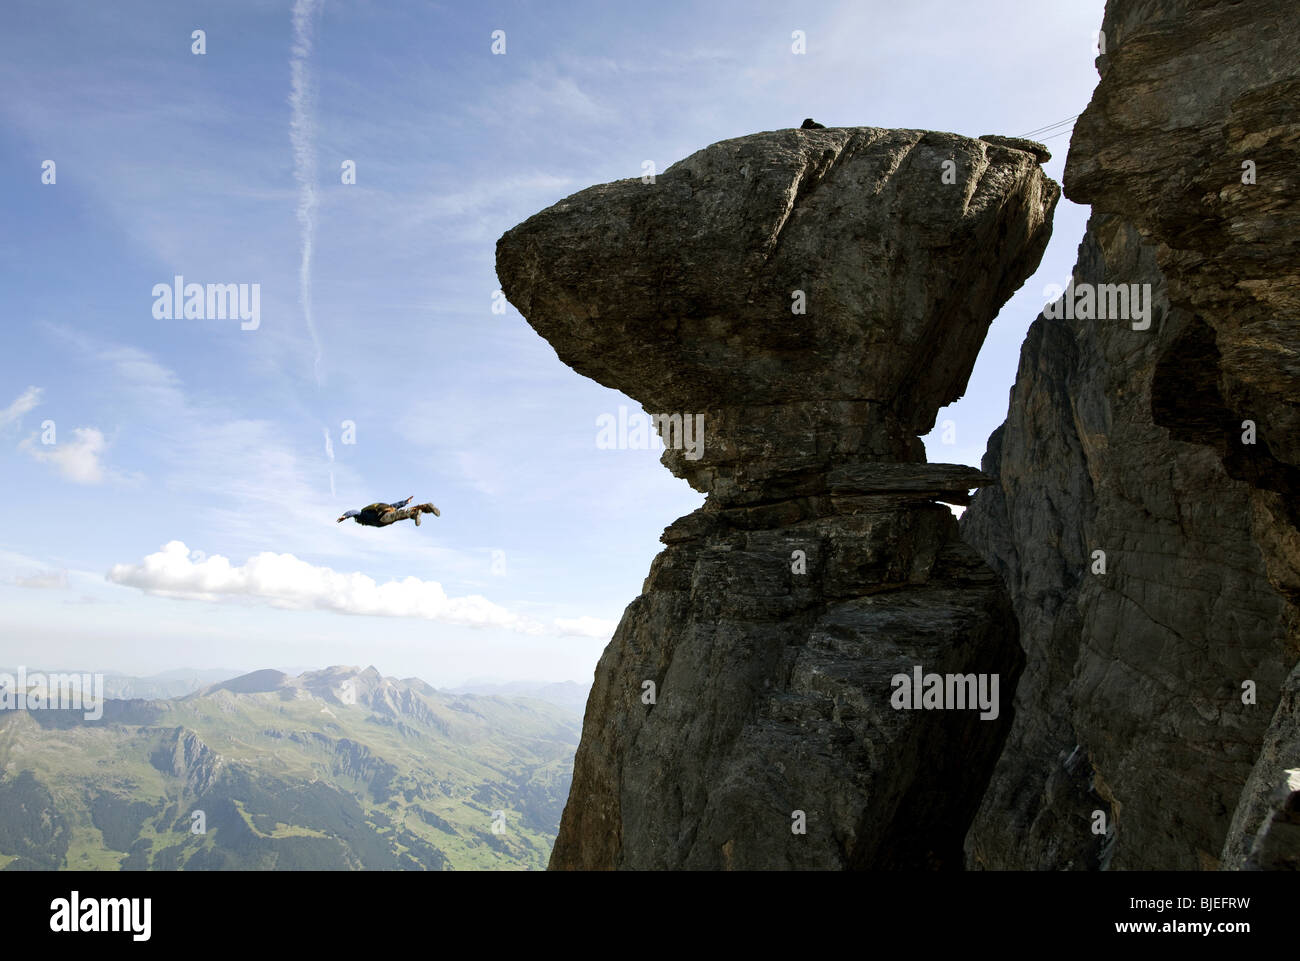 Basejumper free falling, Eiger North Face, Switzerland - Stock Image